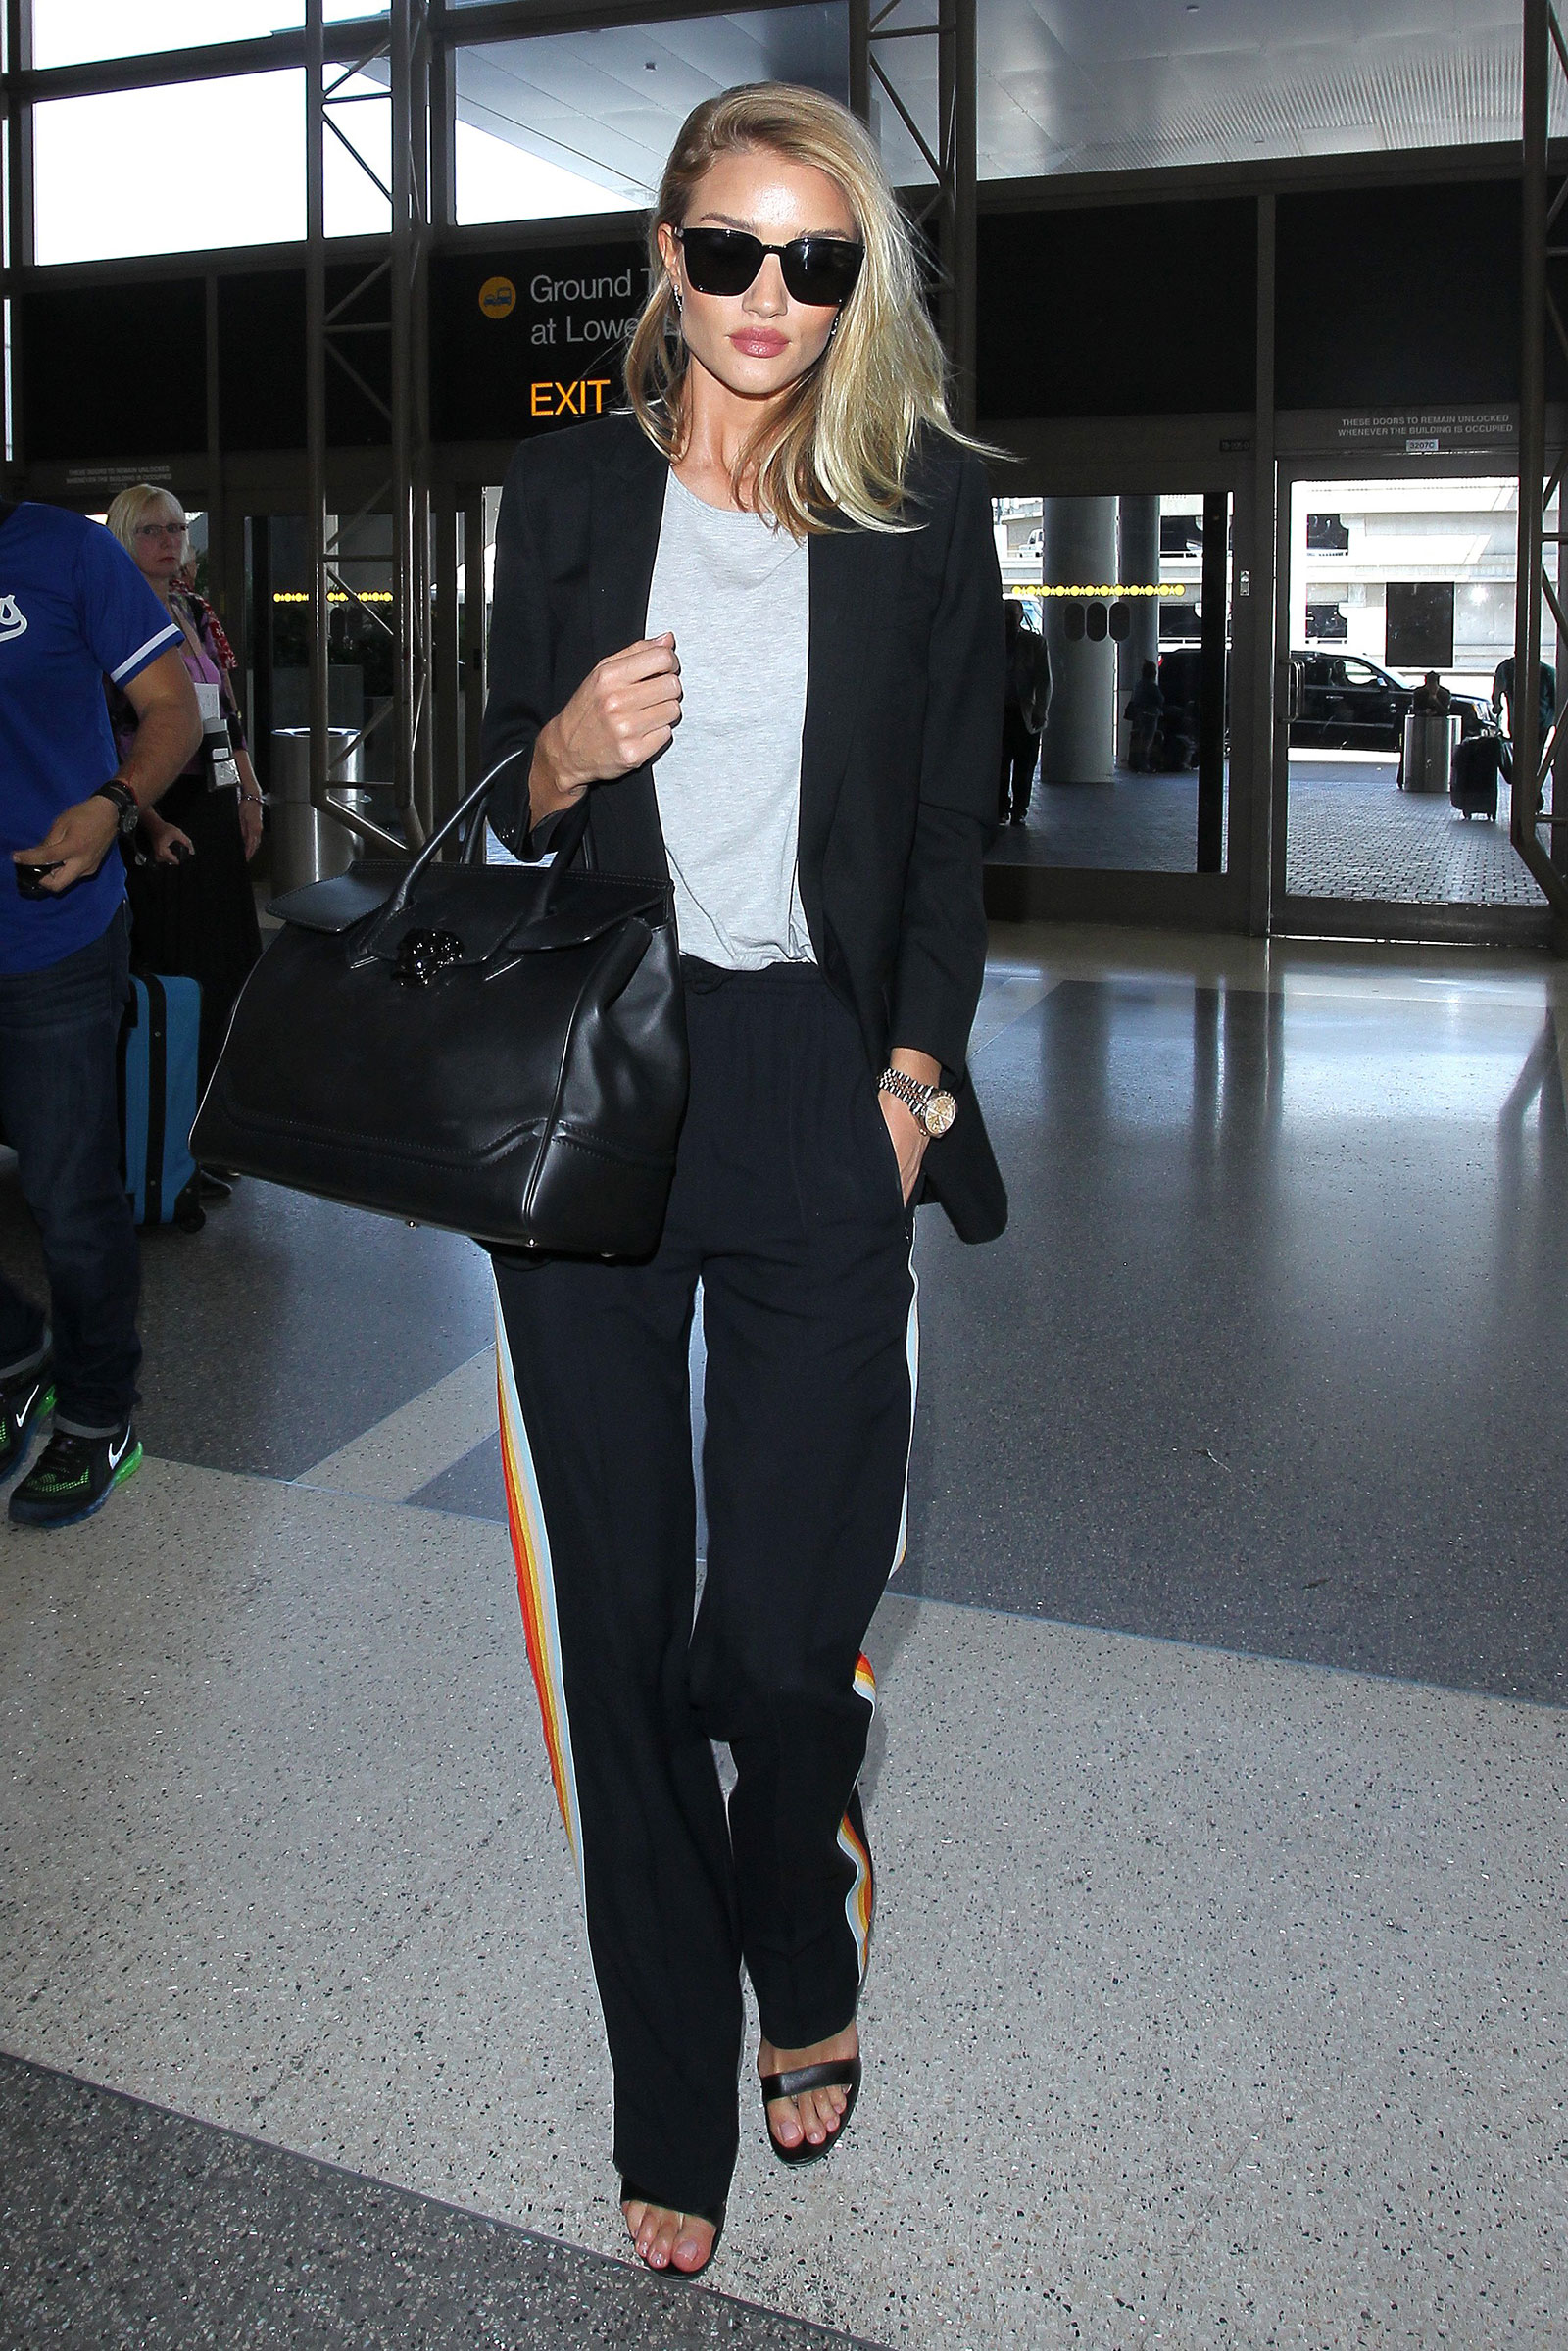 Rosie Huntington Whiteley wears track pants with heels and a blazer.